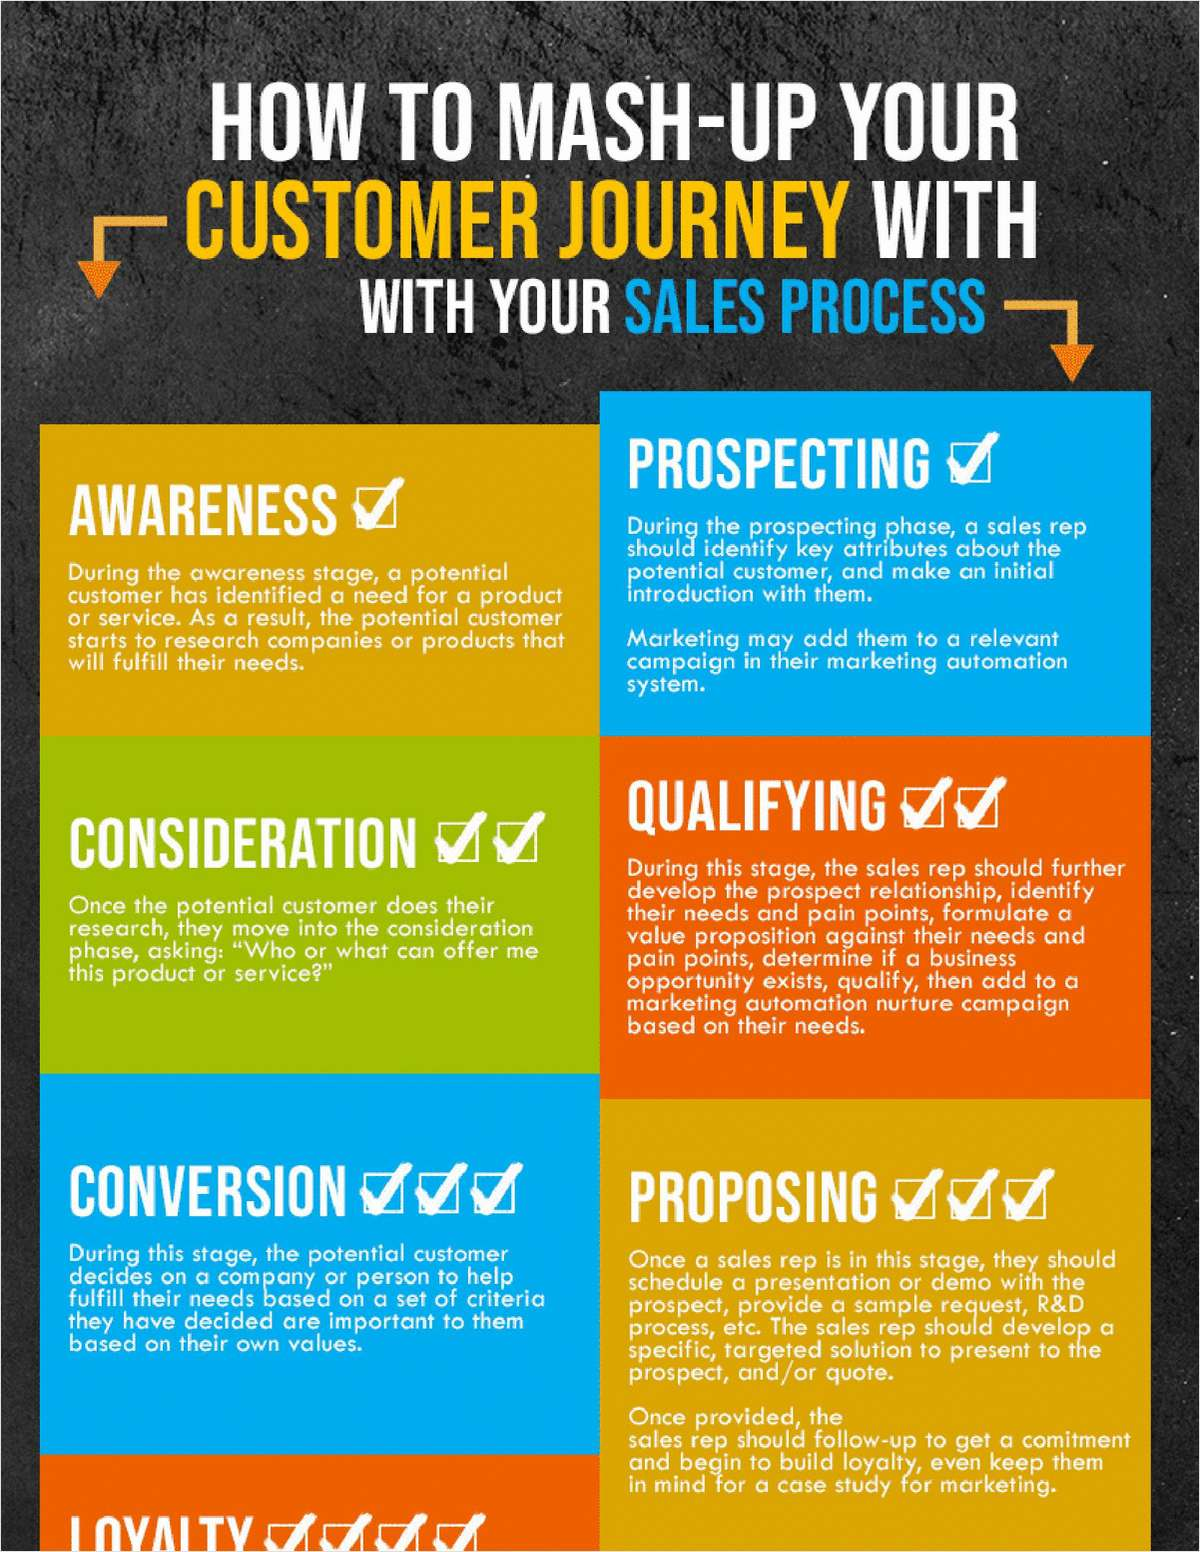 How to Mash-up your Customer Journey with your Sales Process